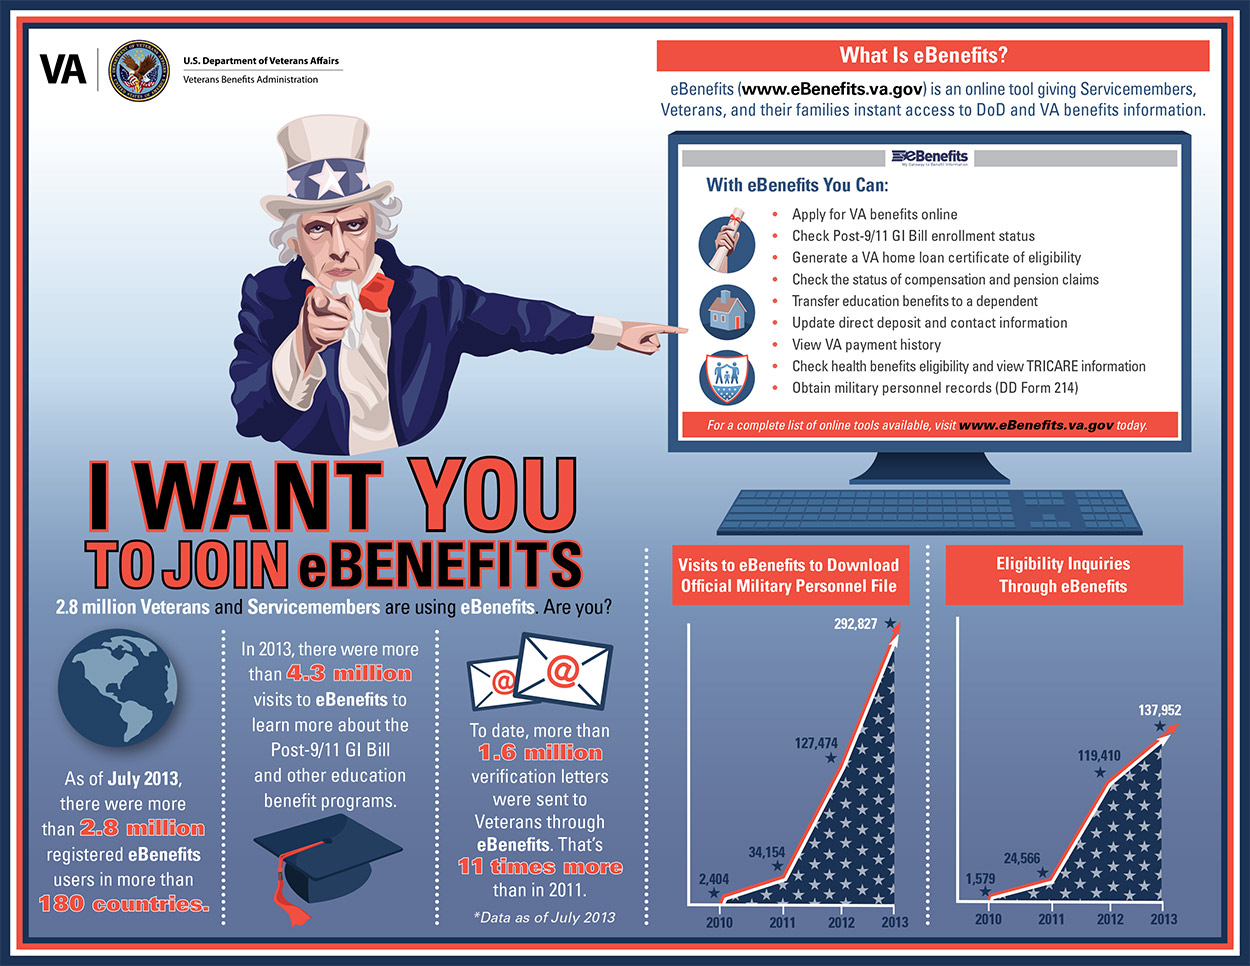 Uncle Sam pointing one finger to the user and pointing the other hand to a computer monitor showing the eBenefits website. Patriotic color scheme of red, white and blue. Line graph shows the increasing number of visitors who download official military personnel files on eBenefits. Line graph shows the increasing number of visitors who submit eligibility inquiries on eBenefits. The eBenefits Web page has three images showing what Veterans can support using eBenefits: a diploma representing an education, a house, and a family. Please see PDF Download link to view an accessible PDF that addresses the text content of this document.